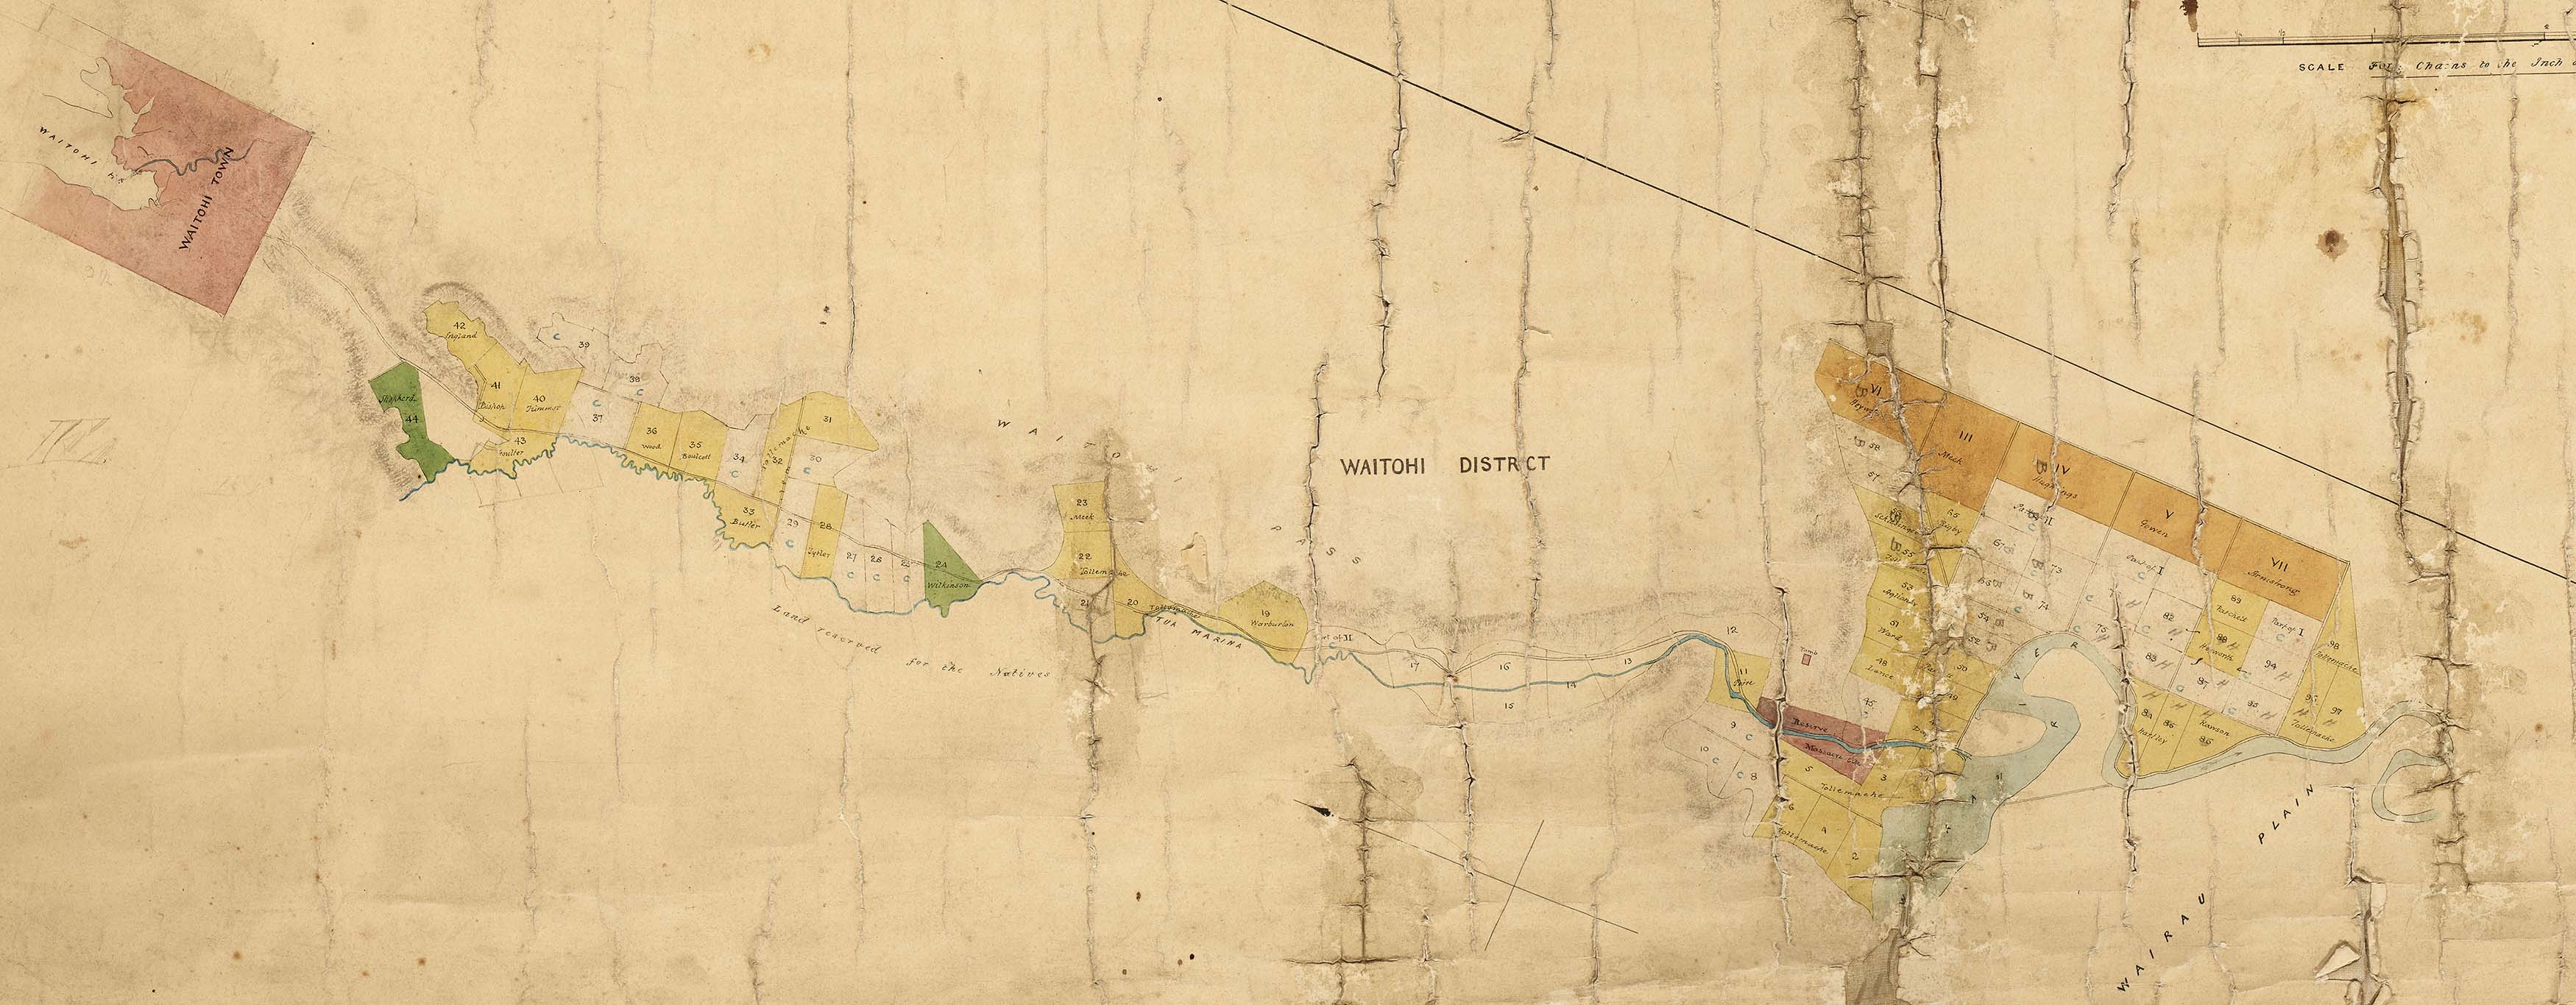 Portion of hand drawn map showing sections, mountain range and a river